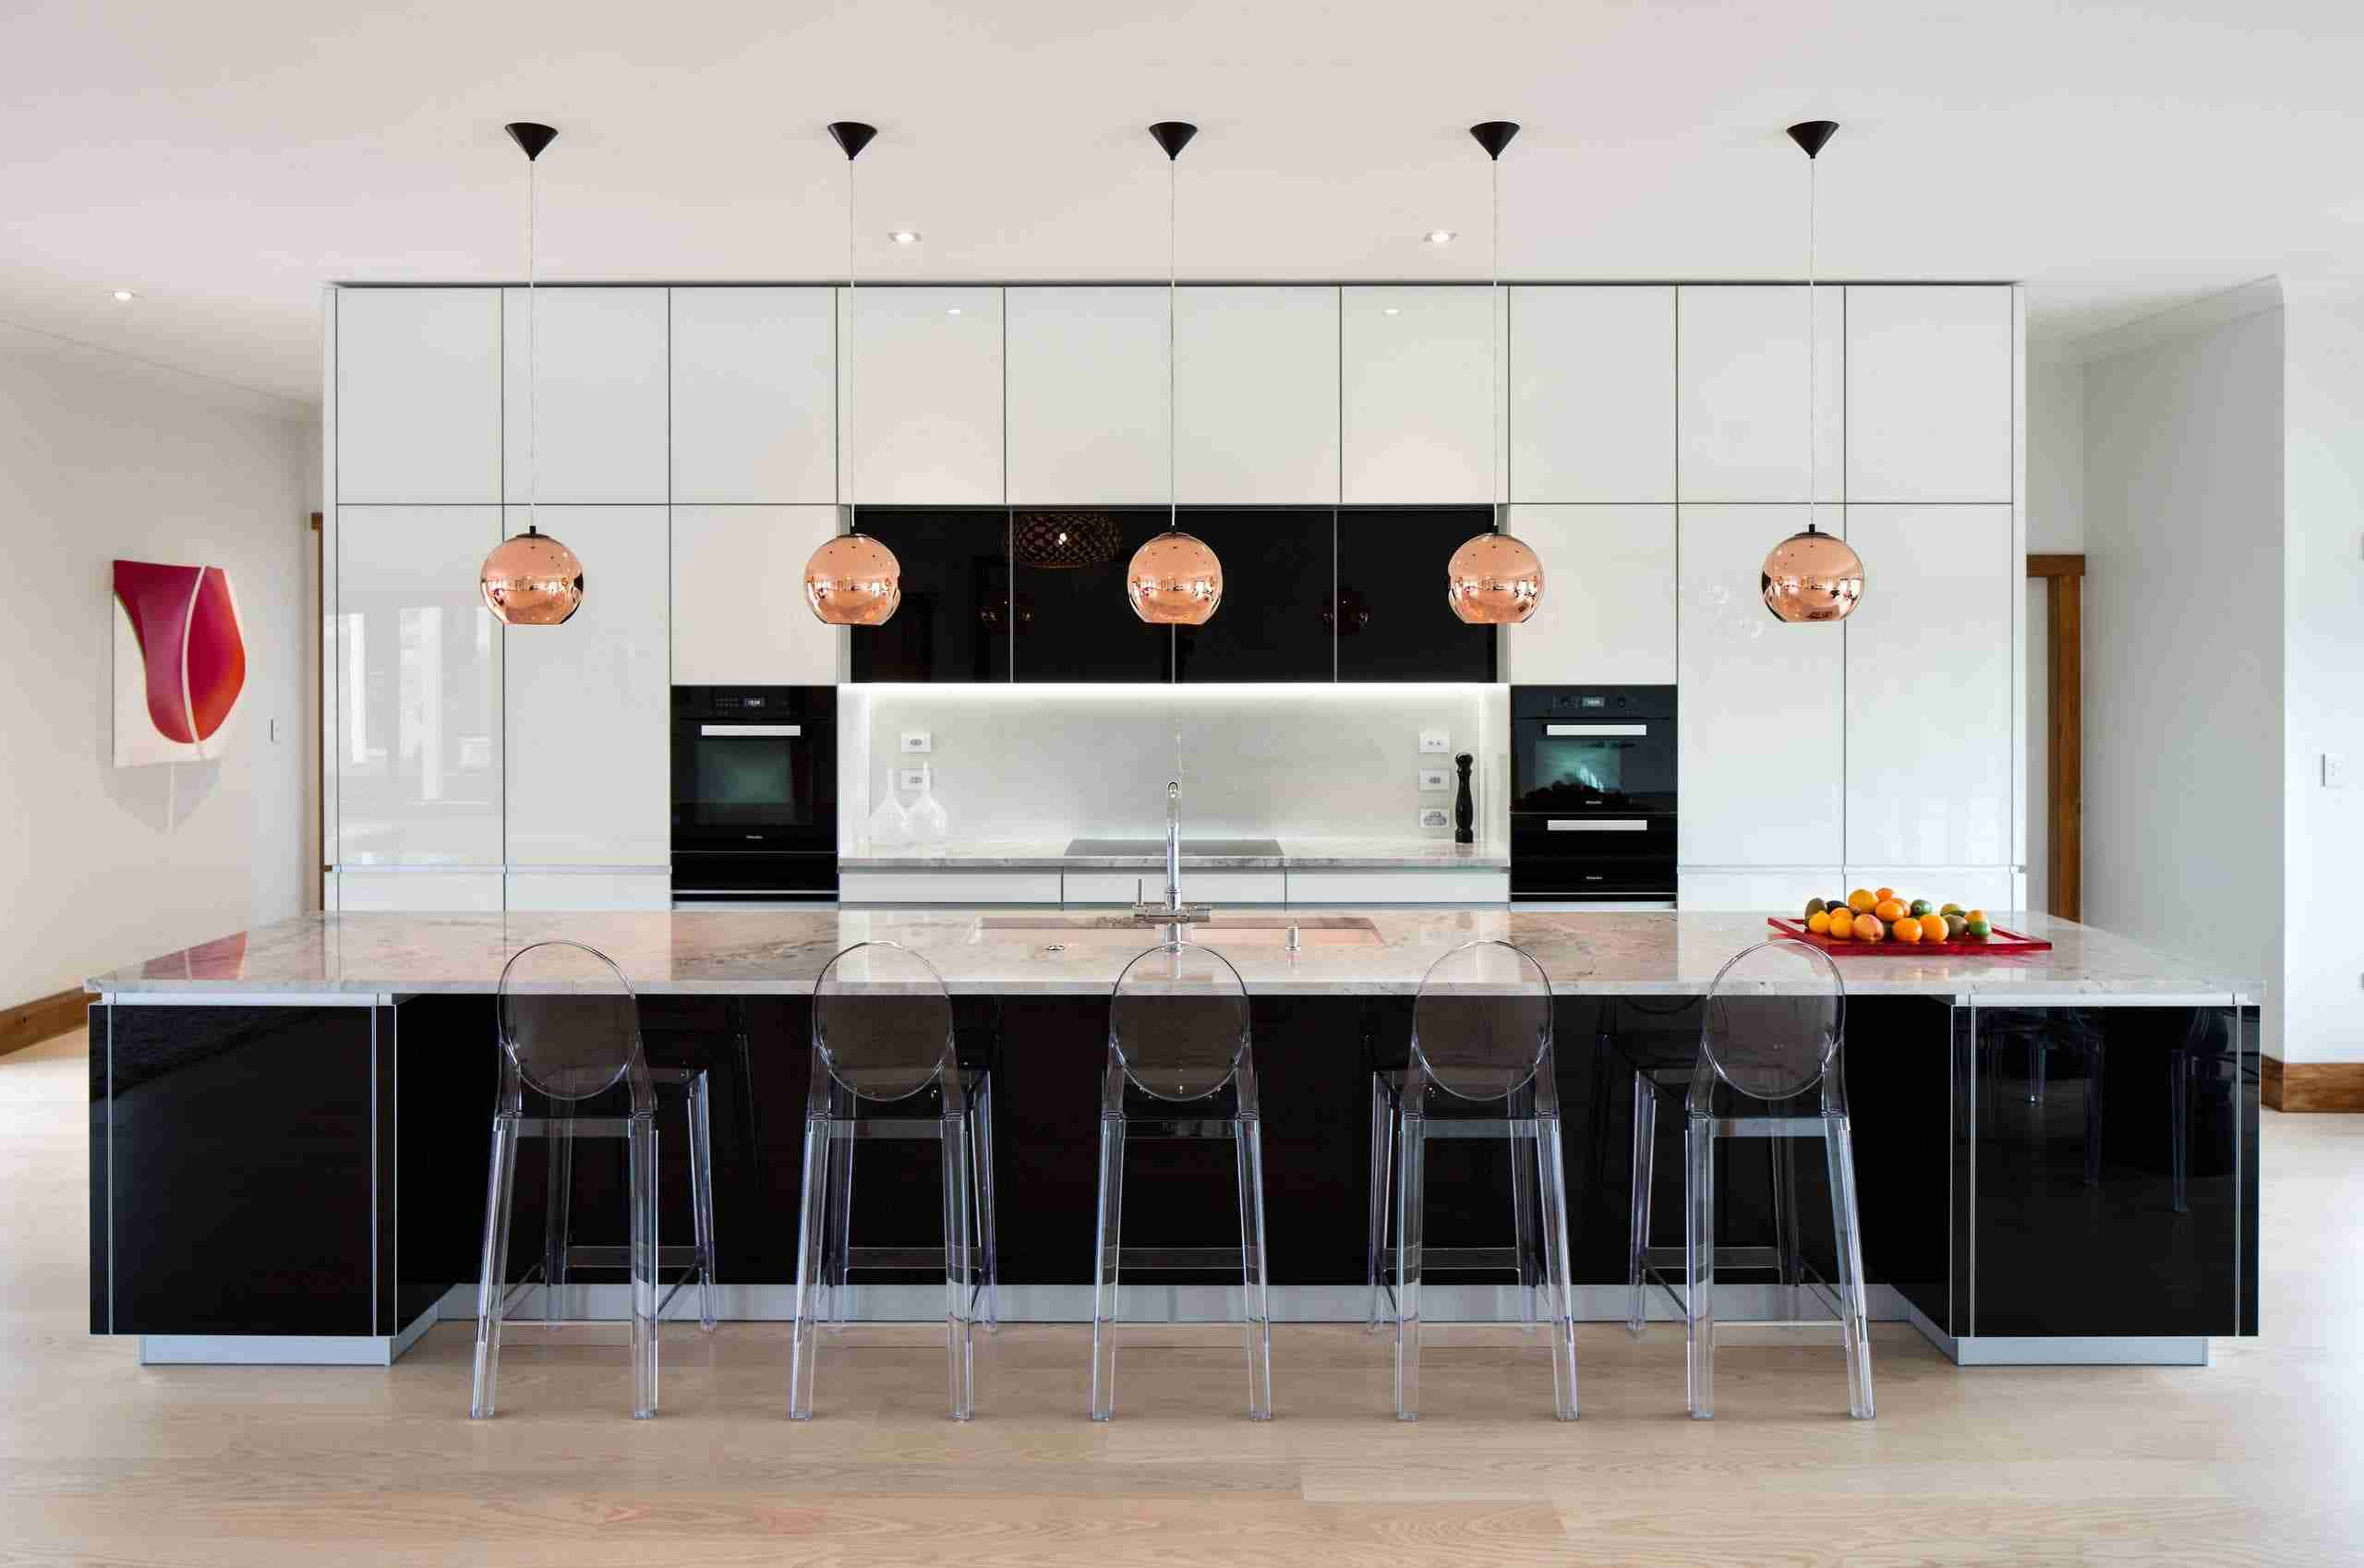 Solid Wood Kitchen Stylish Ideas for Modern Interiors. Black and white kitchen design with plexiglass chairs at the island